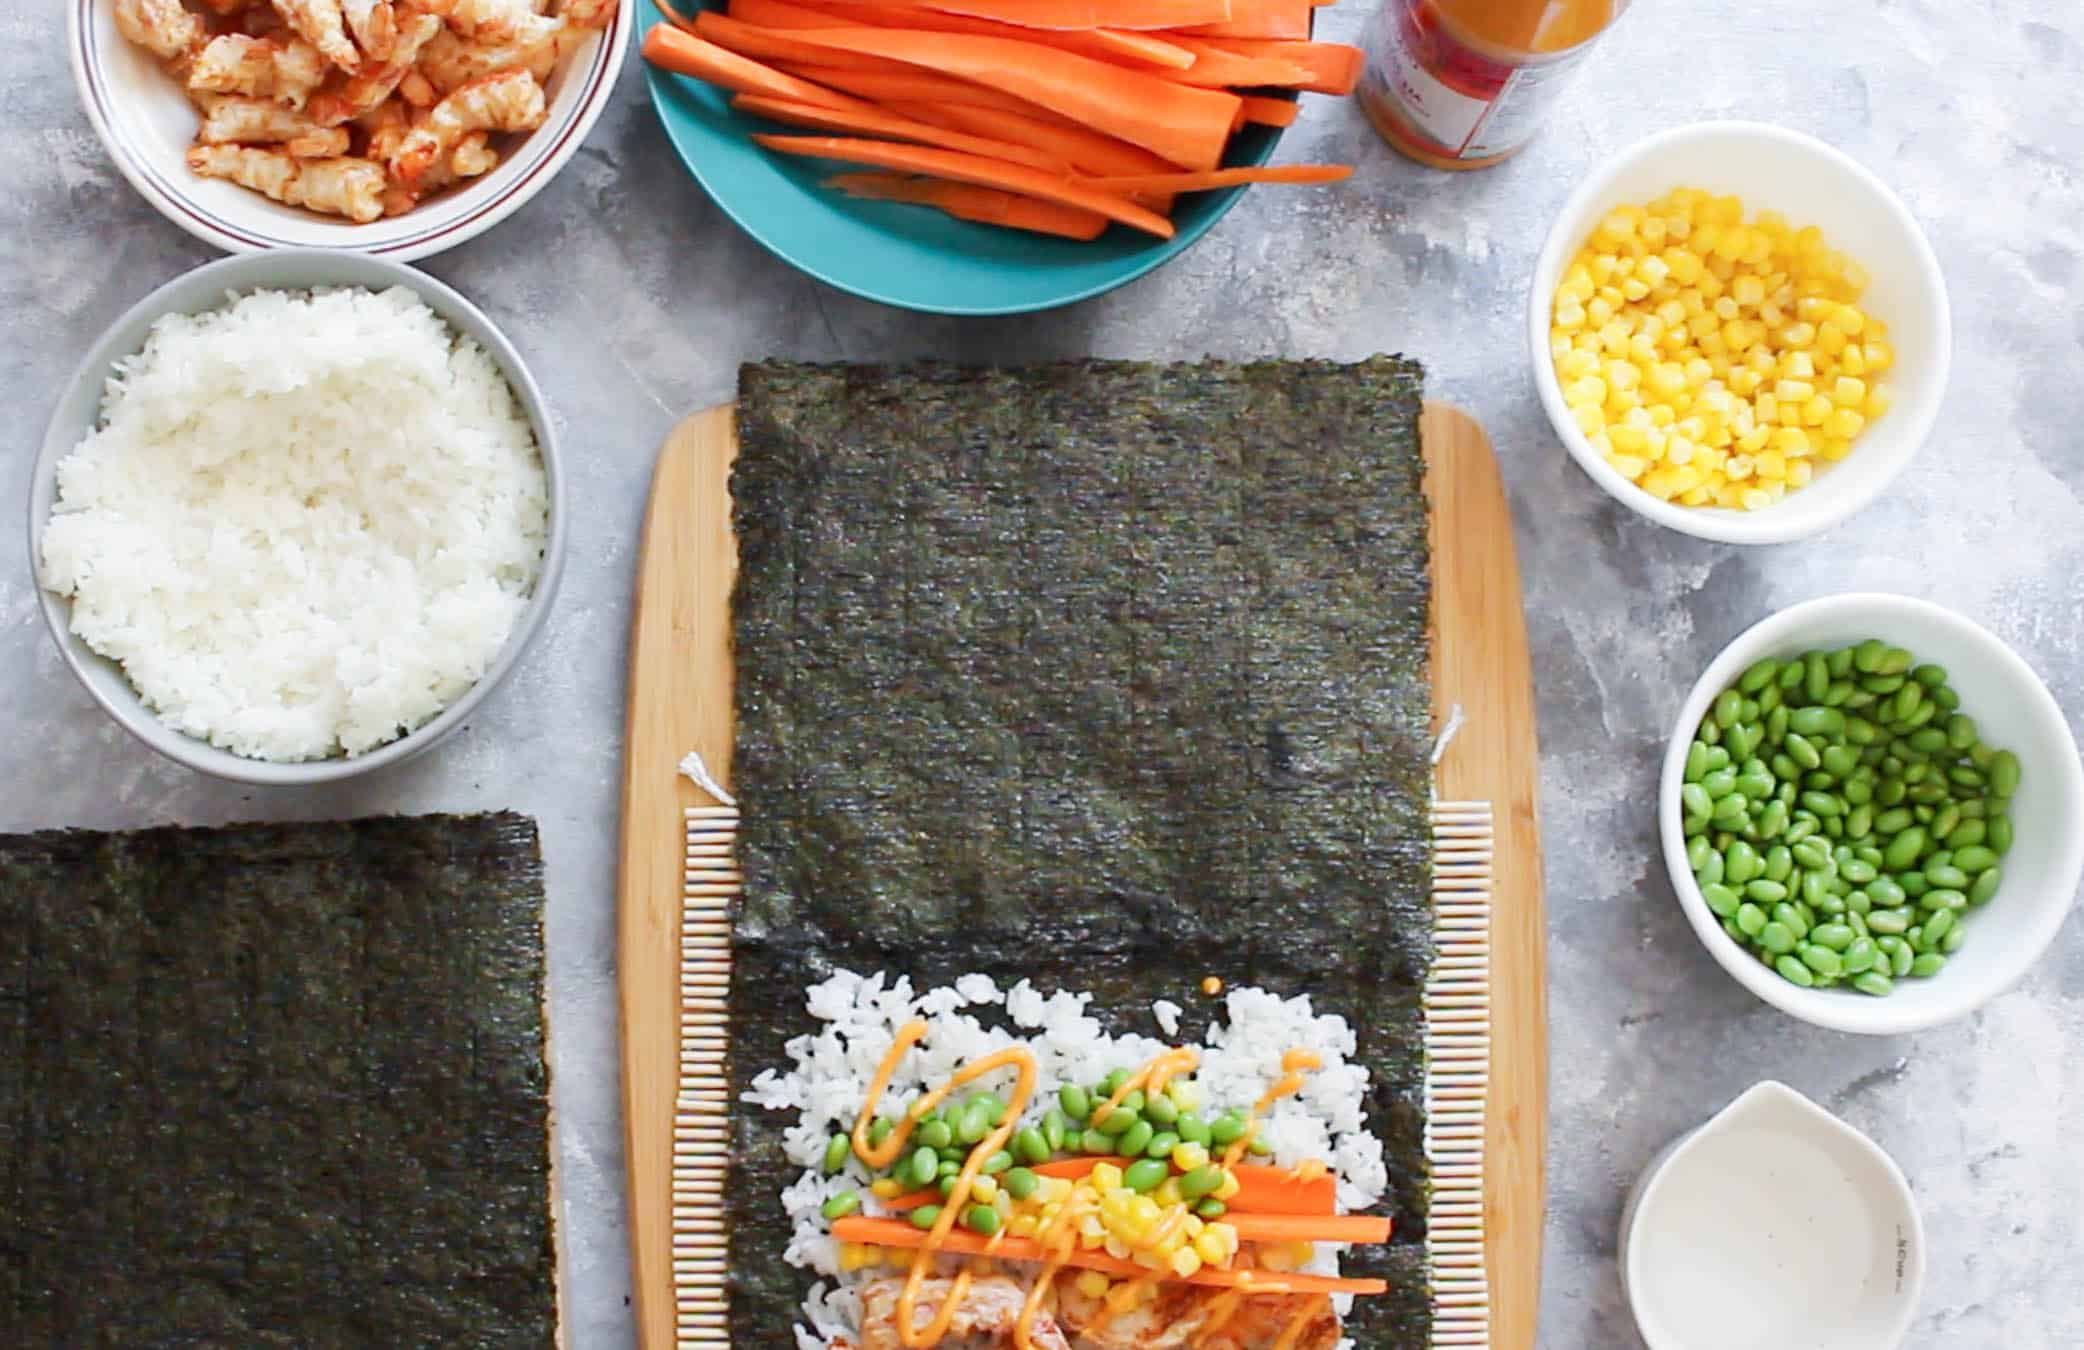 ThisAirFryer Shrimp Tempura Sushi Burrito is the perfect lunch meal prep! Easy to grab and go, heat not required, and healthy, this sushi burrito will be your go-to lunch!